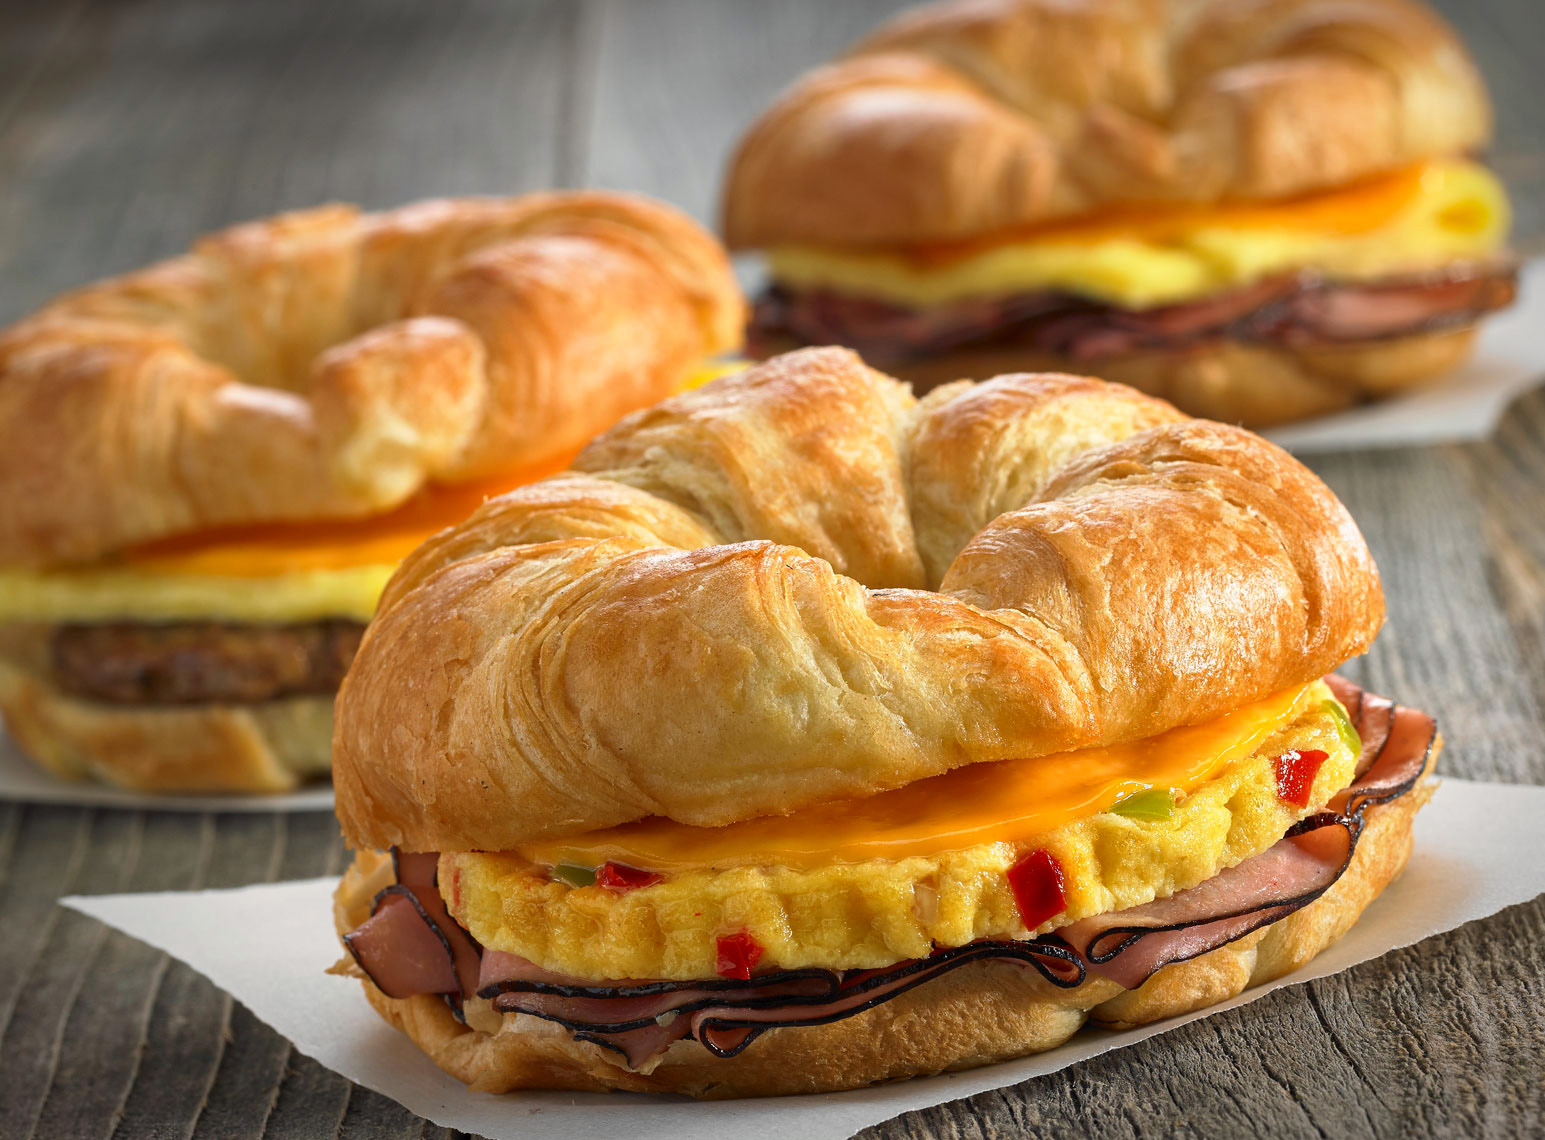 Croisant Breakfast sandwiches